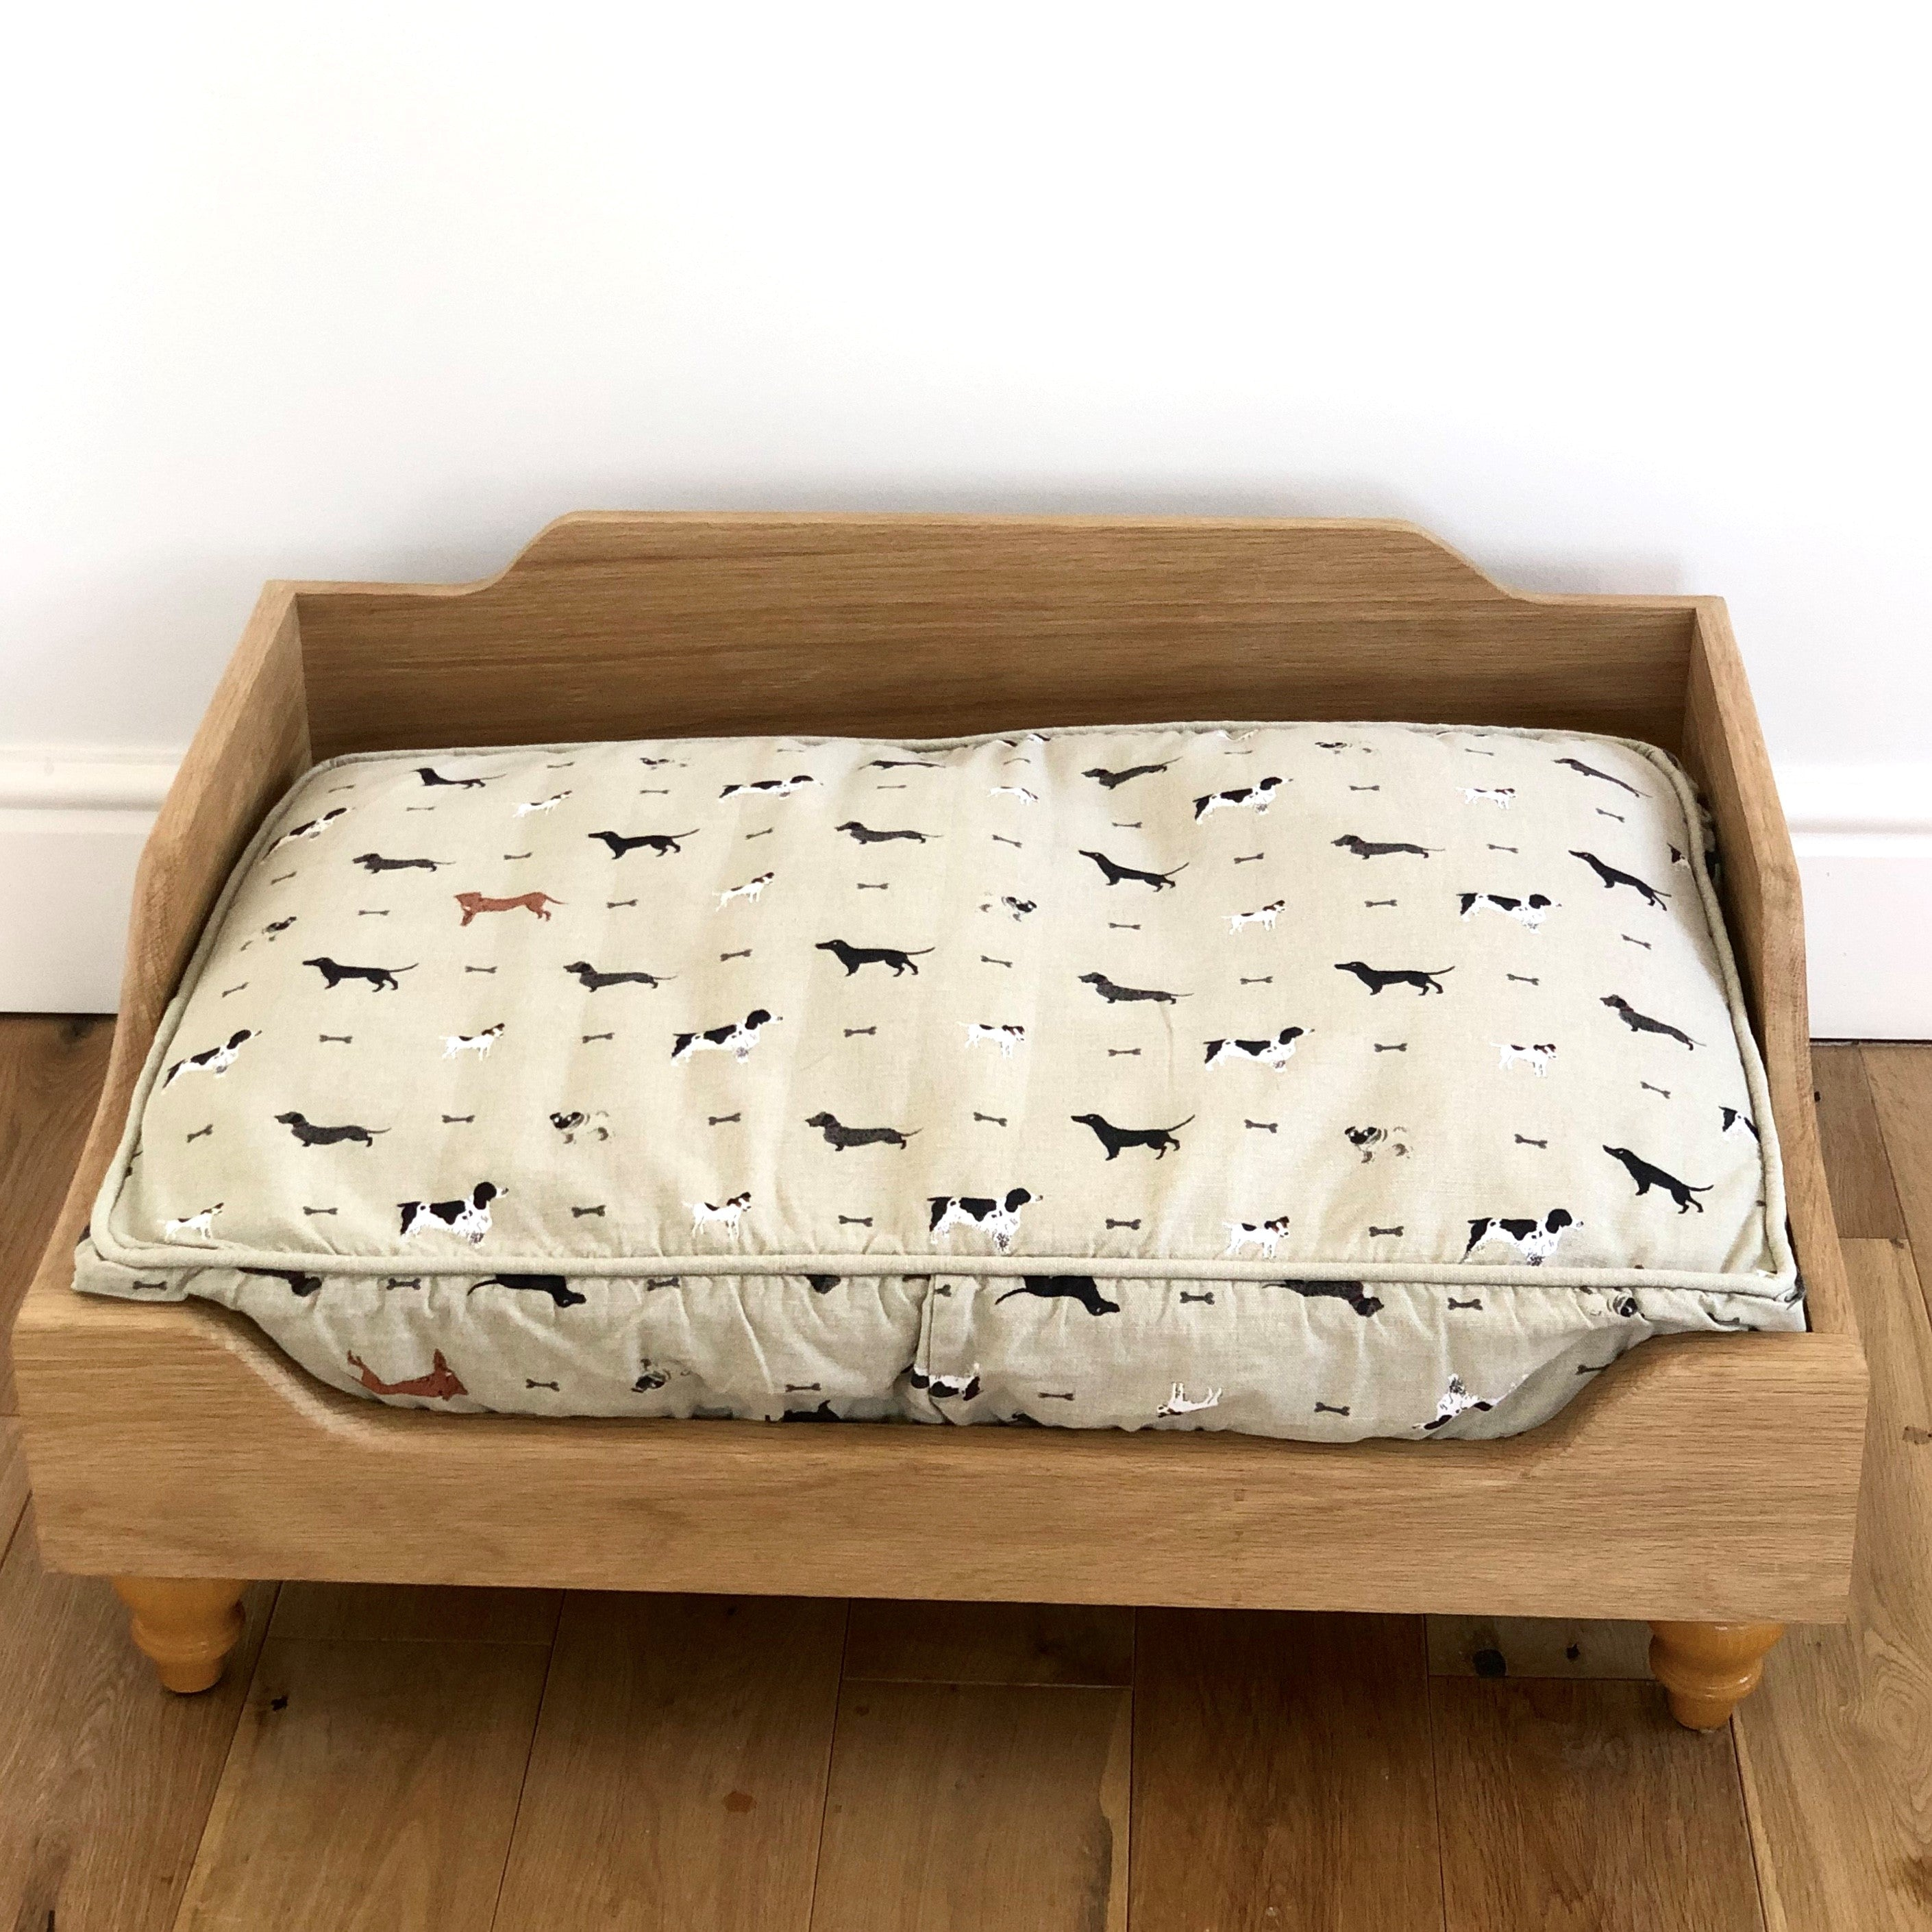 Handmade Raised Wooden Dog Bed - R&M Woodworking